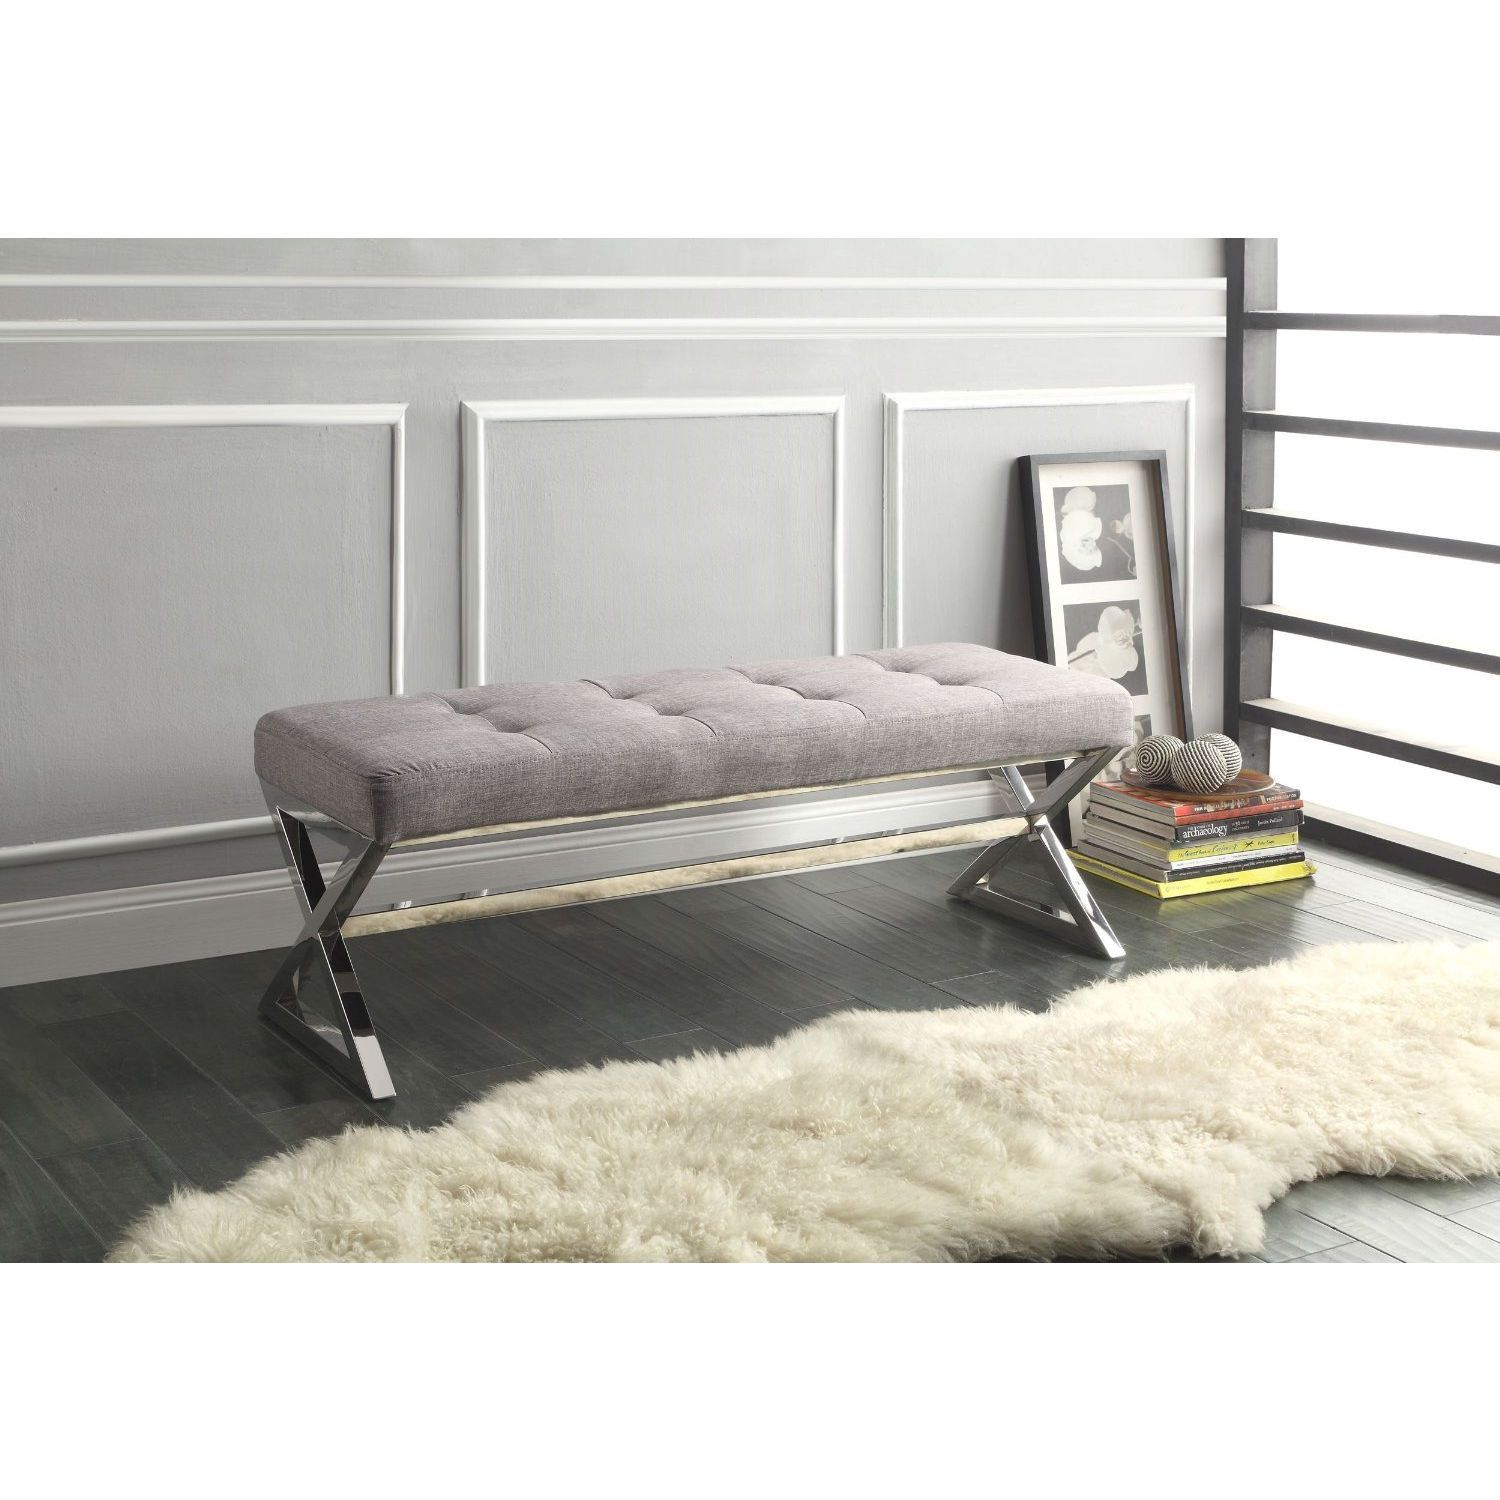 Modern Living Room Metal Bench With Button Tufted Grey Linen Seat Furniture Bedroom Furniture Grey Furniture